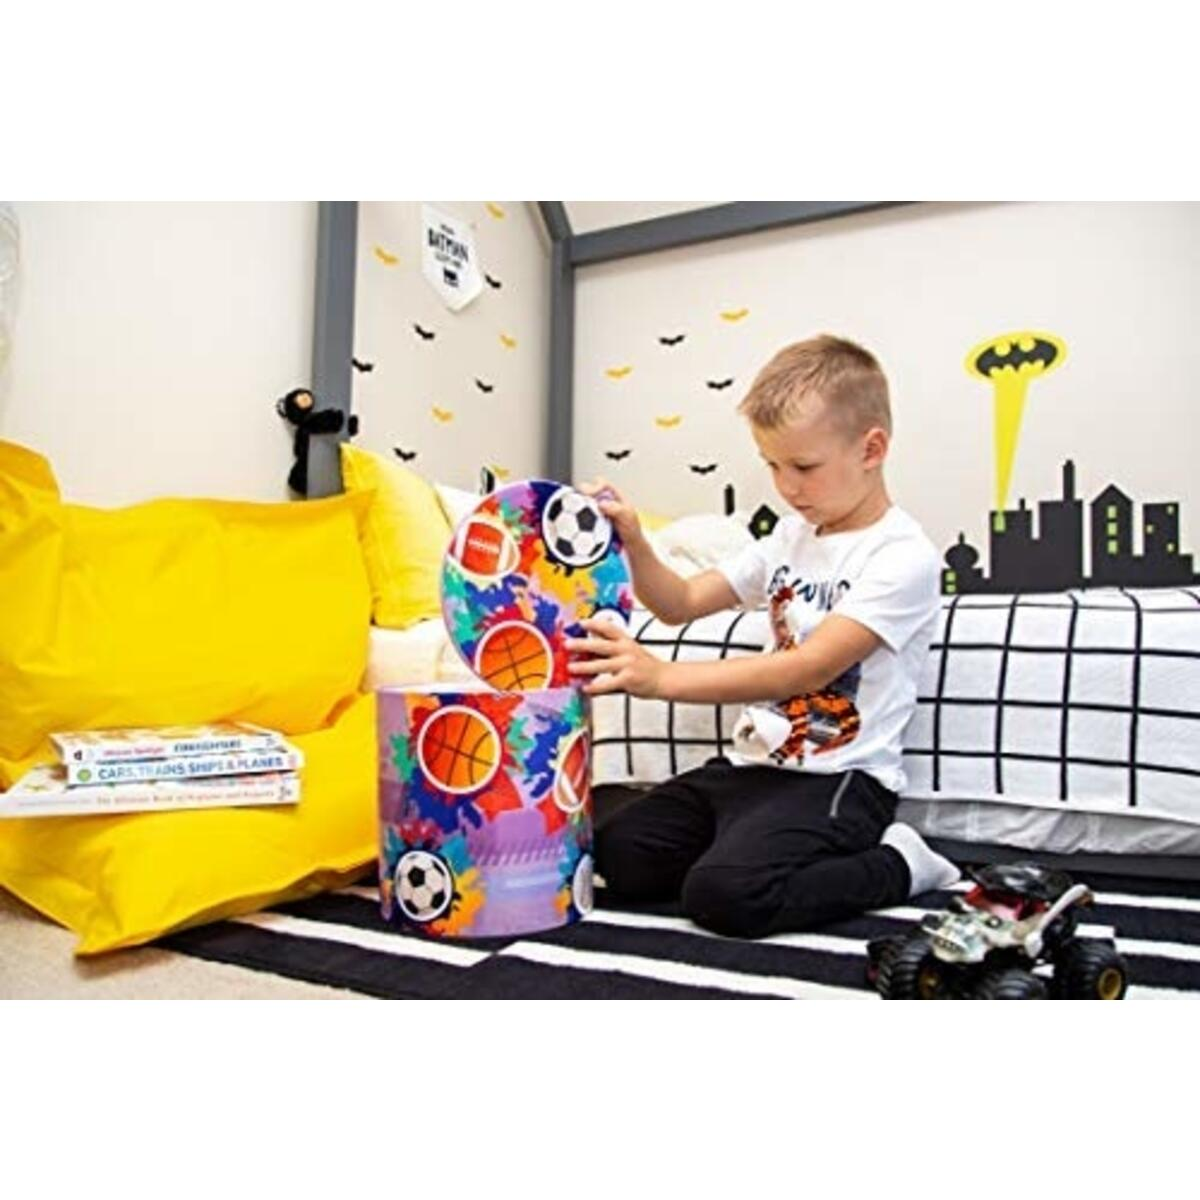 Kids Toy Storage Stool – Fun & Convenient Organization Stool for Modern Parents and Playful Children – Toys, Books or Blankets Organizer for Playroom, Living-Room & More